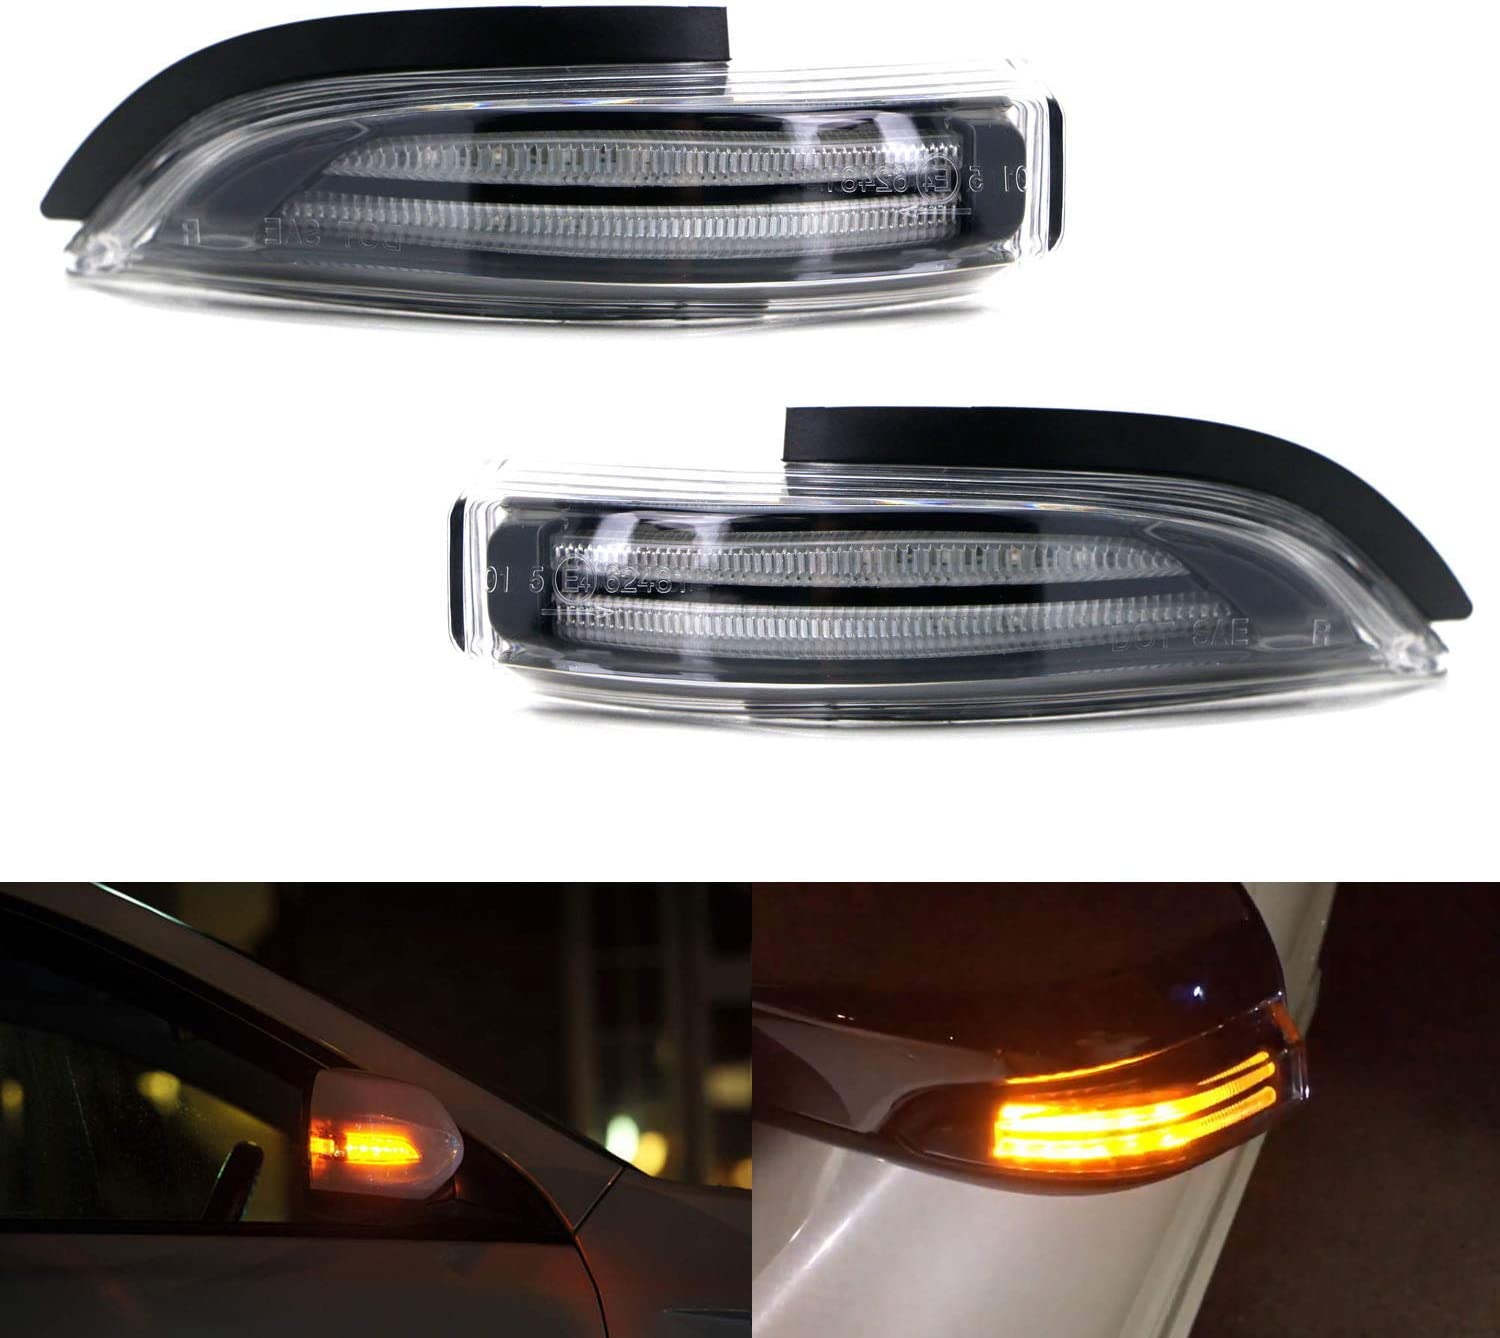 iJDMTOY JDM Clear Lens Amber Sequential Side Tu Mirror Flash Max 78% OFF Arlington Mall LED